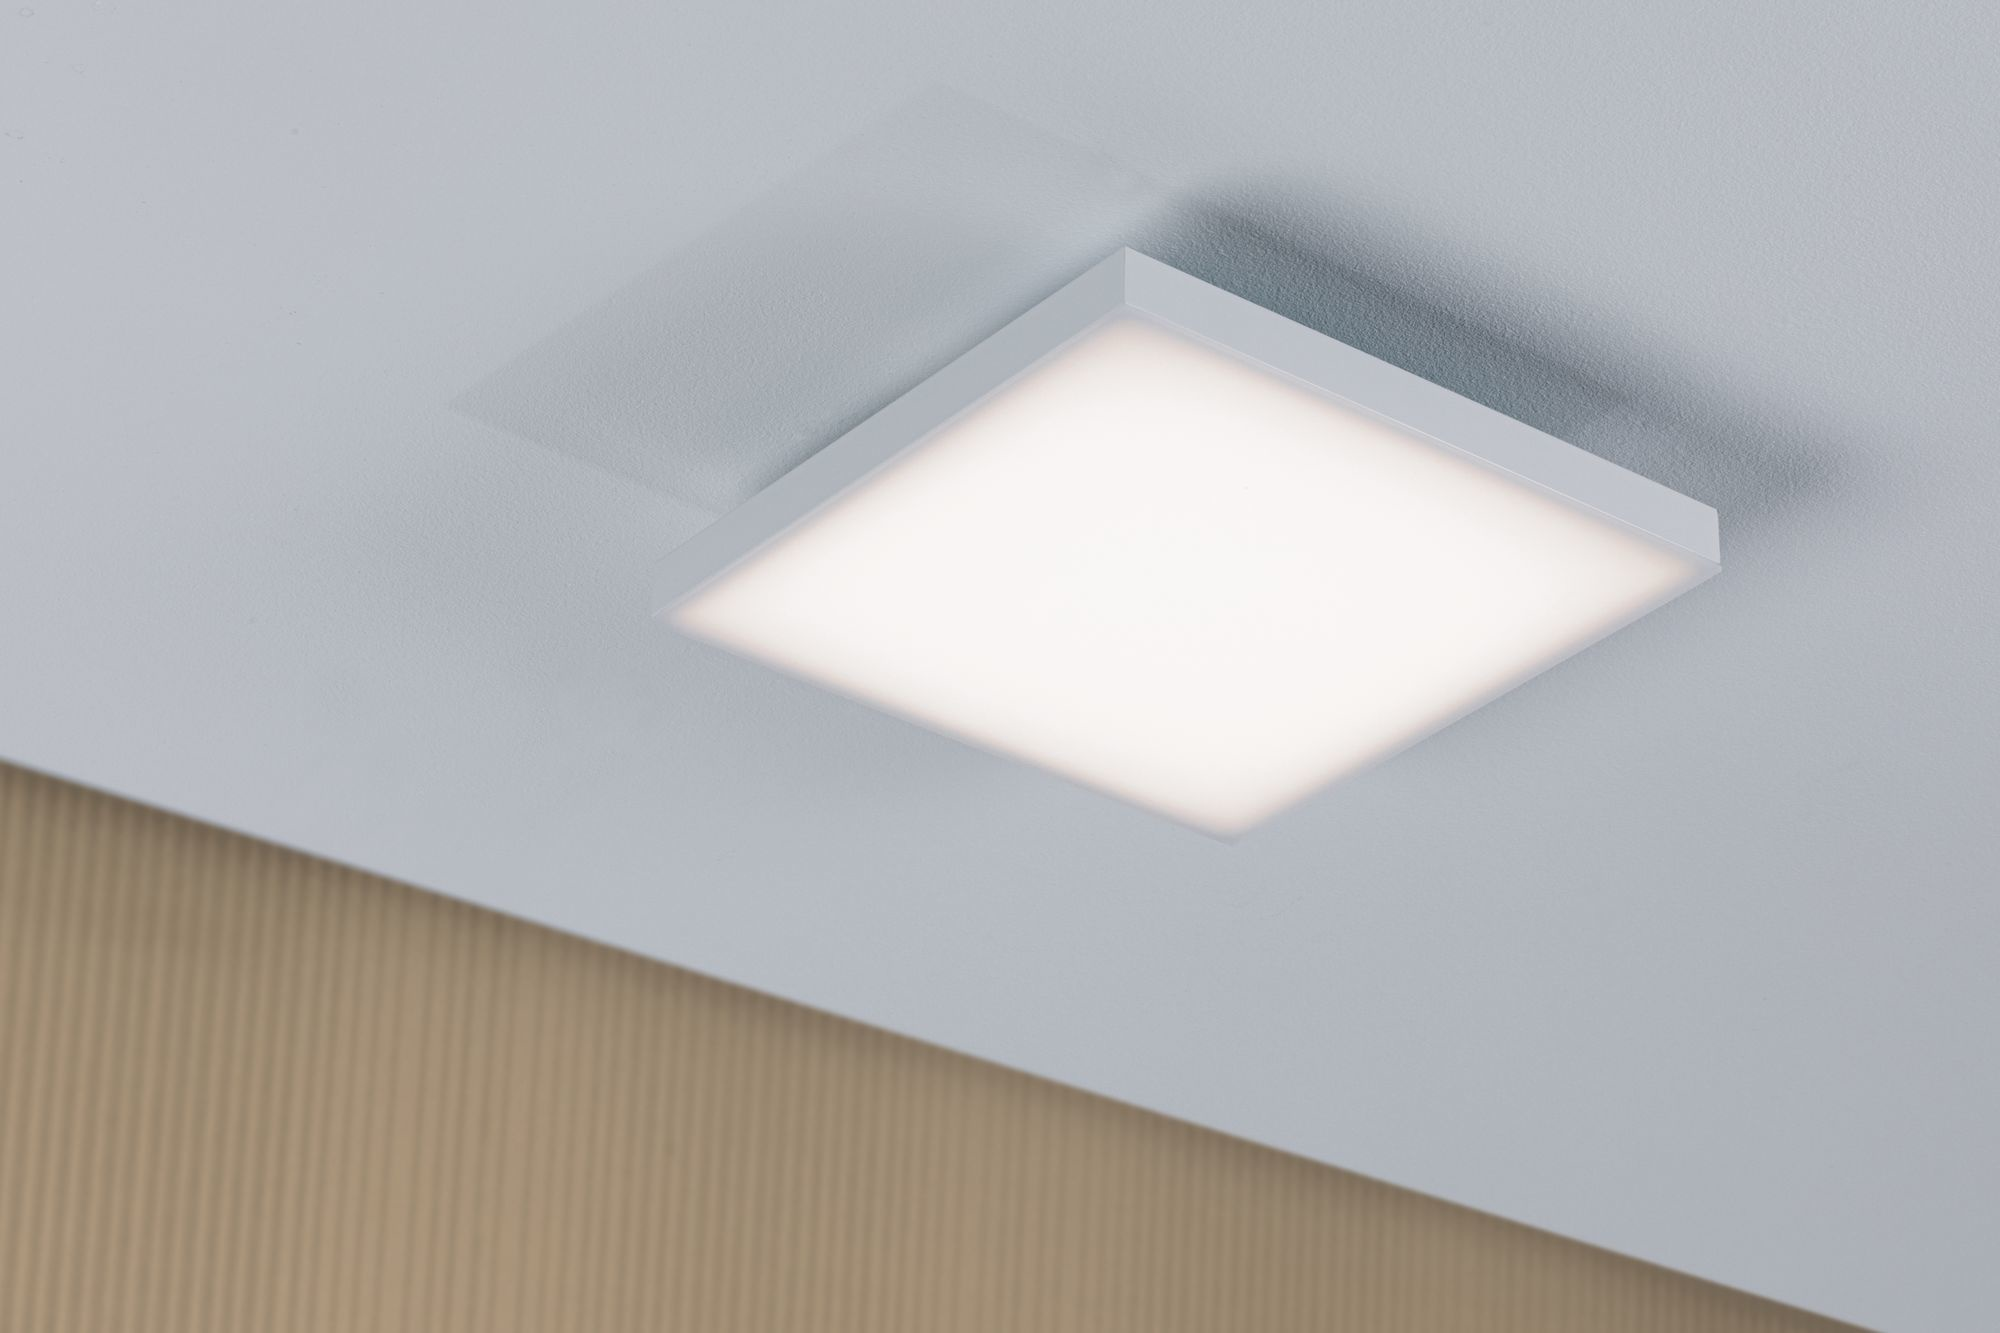 Paulmann WallCeiling Velora LED Panel 225x225mm 13W Weiß matt 230V Metall